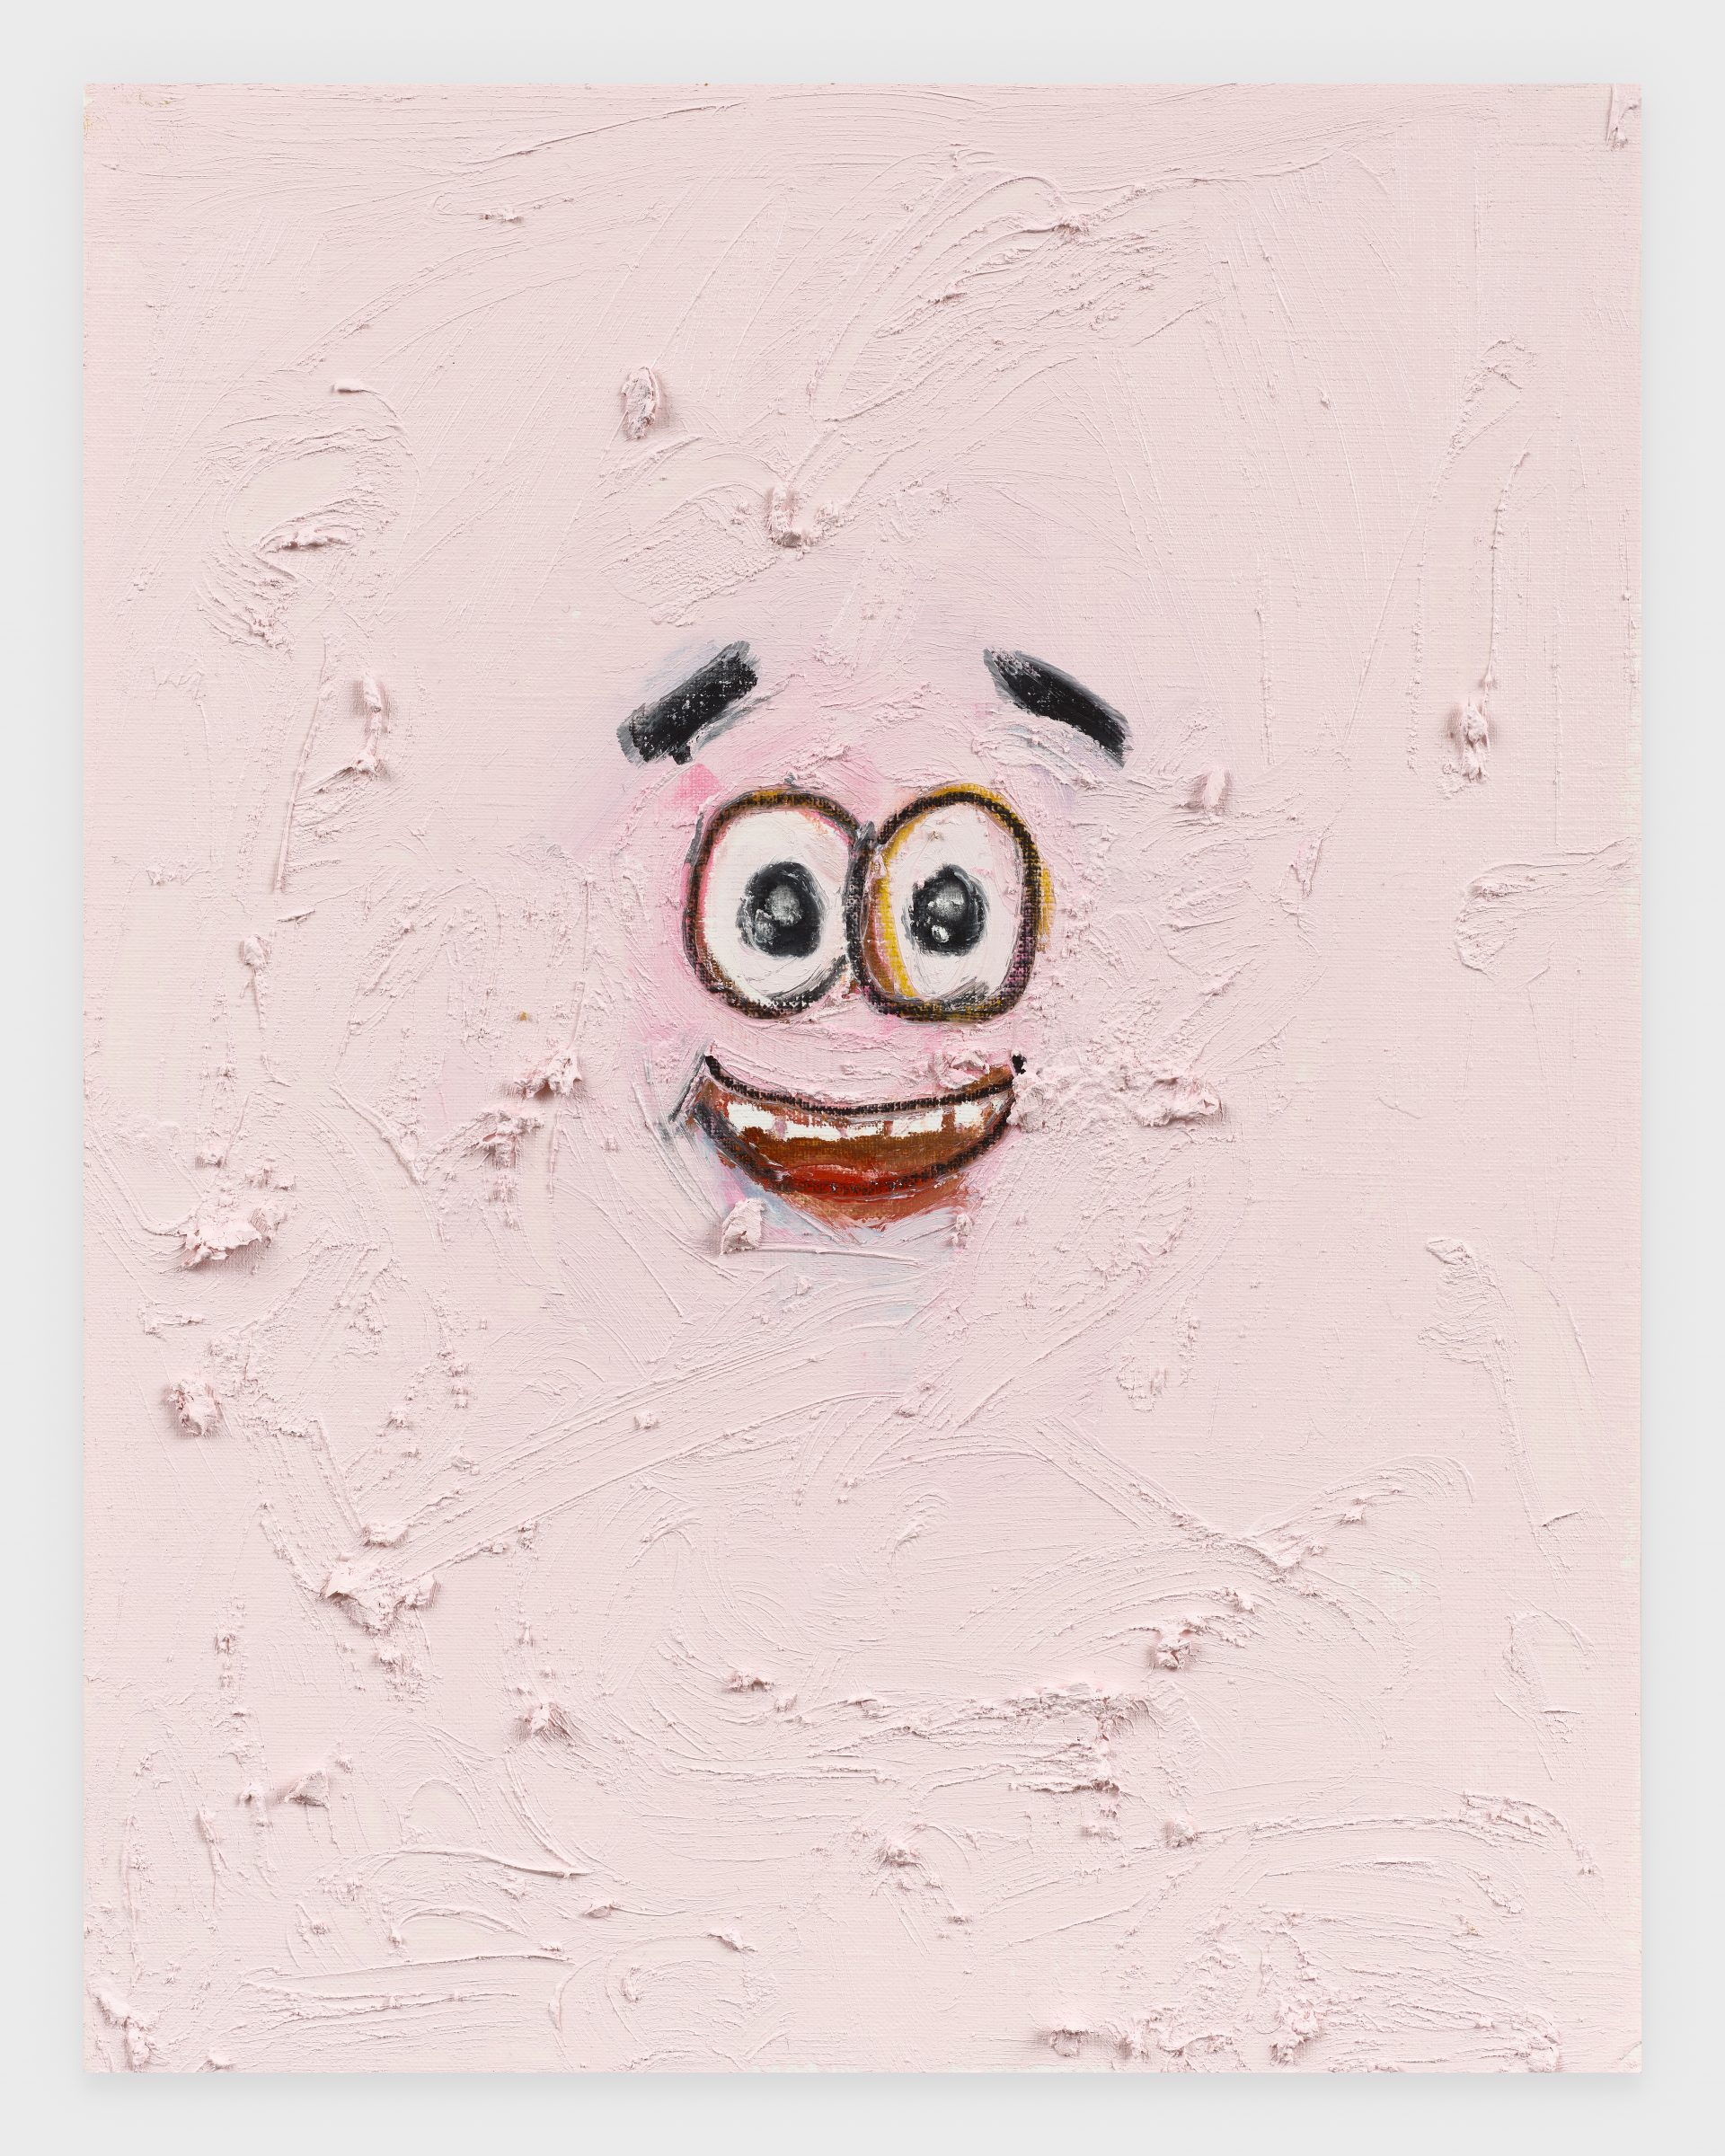 Patrick III, 2020, Oil stick on archival paper, 11 x 14 inches